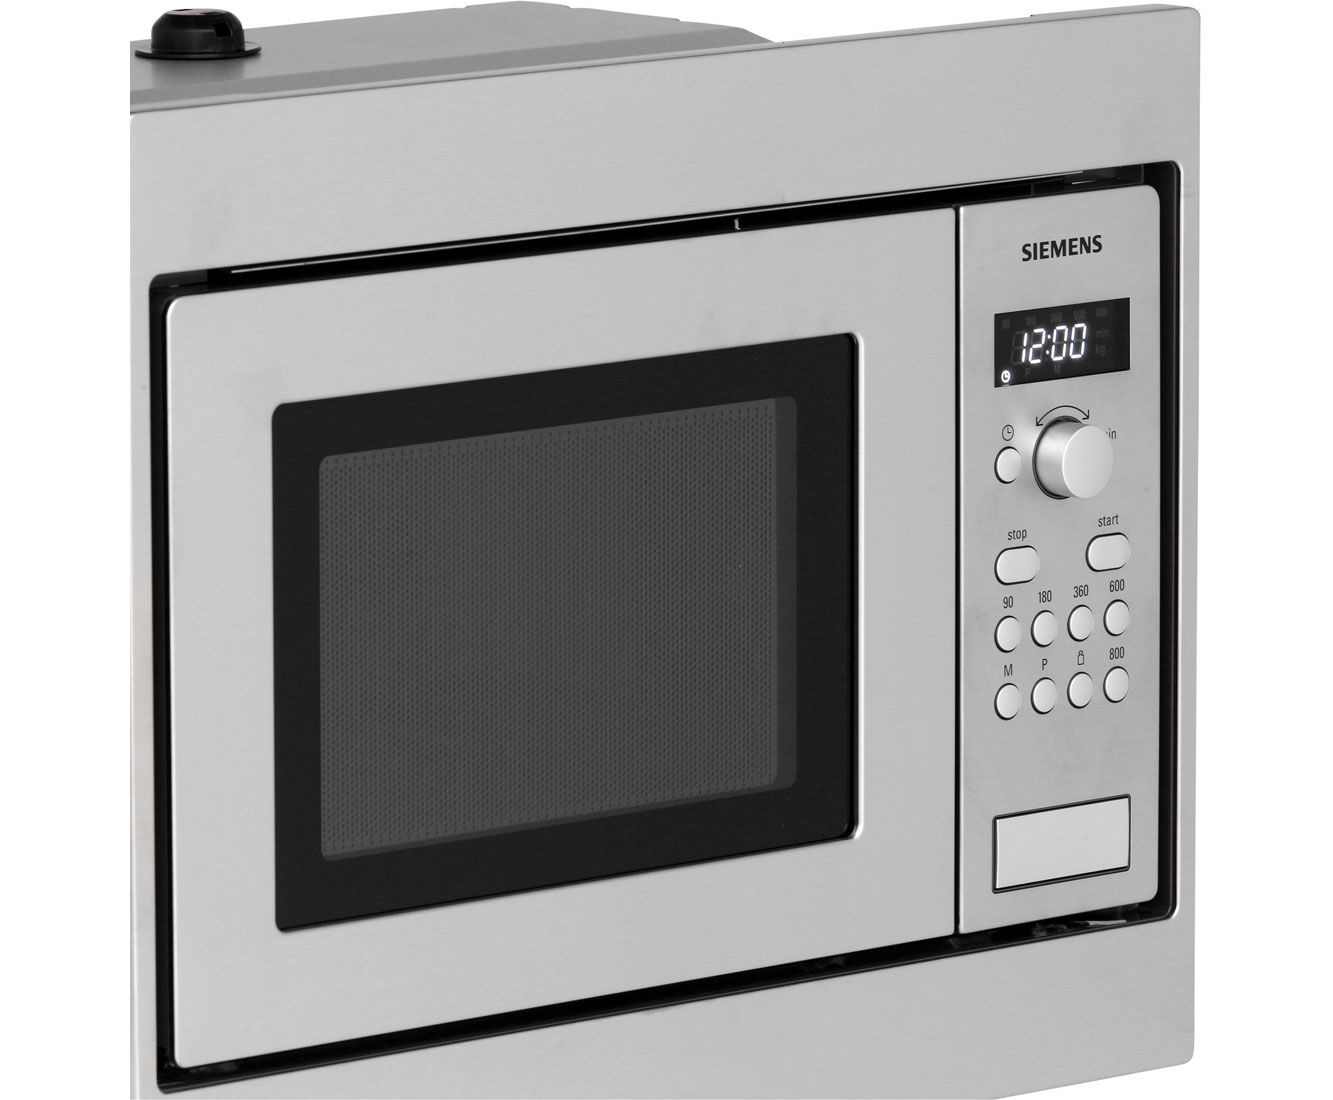 siemens mikrowelle elegant siemens mikrowelle with siemens mikrowelle free siemens bfrgs with. Black Bedroom Furniture Sets. Home Design Ideas